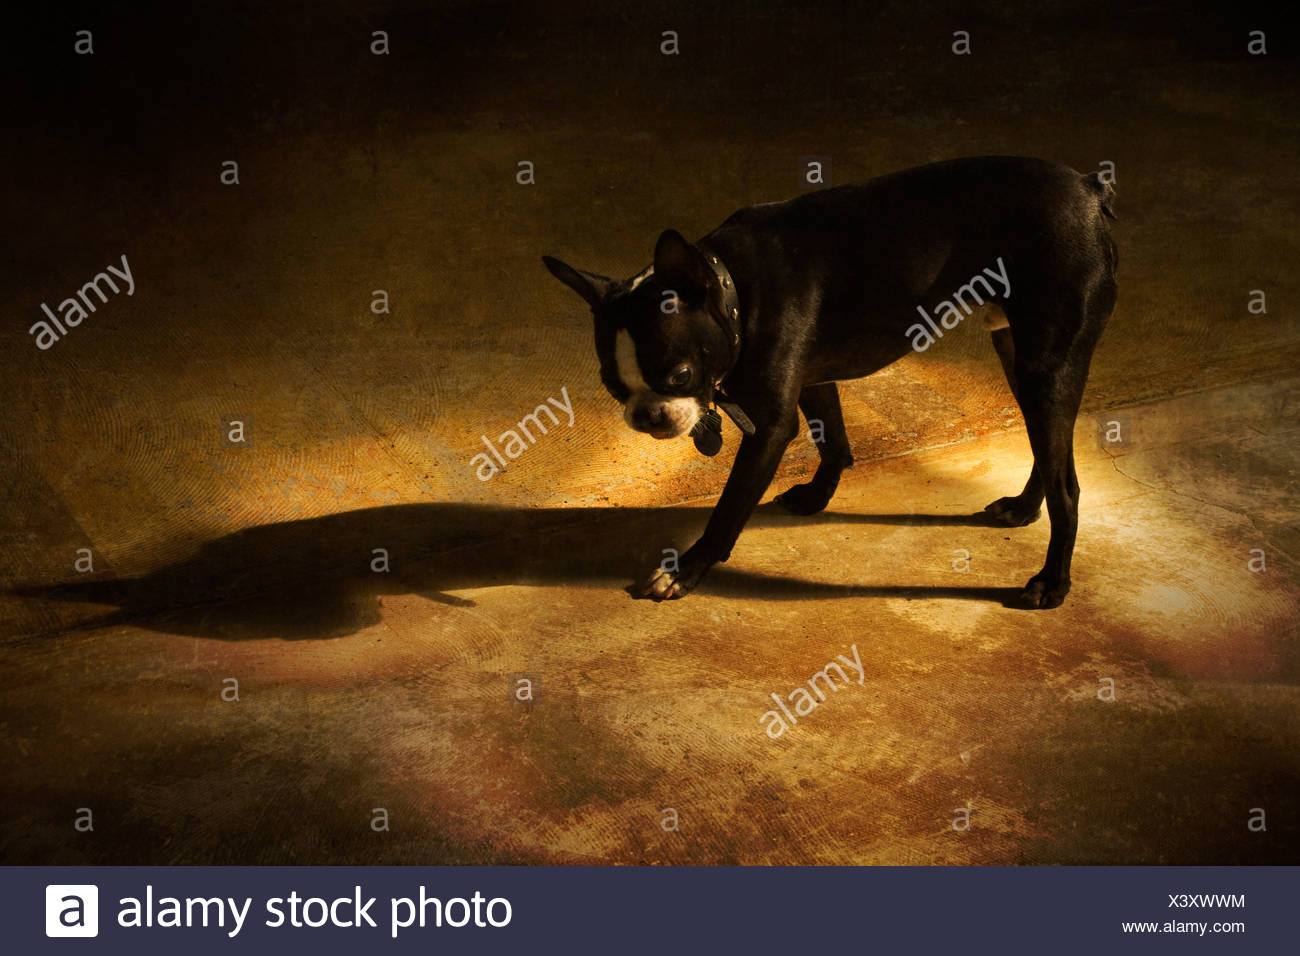 A small dog standing with its shadow no.2 - Stock Image